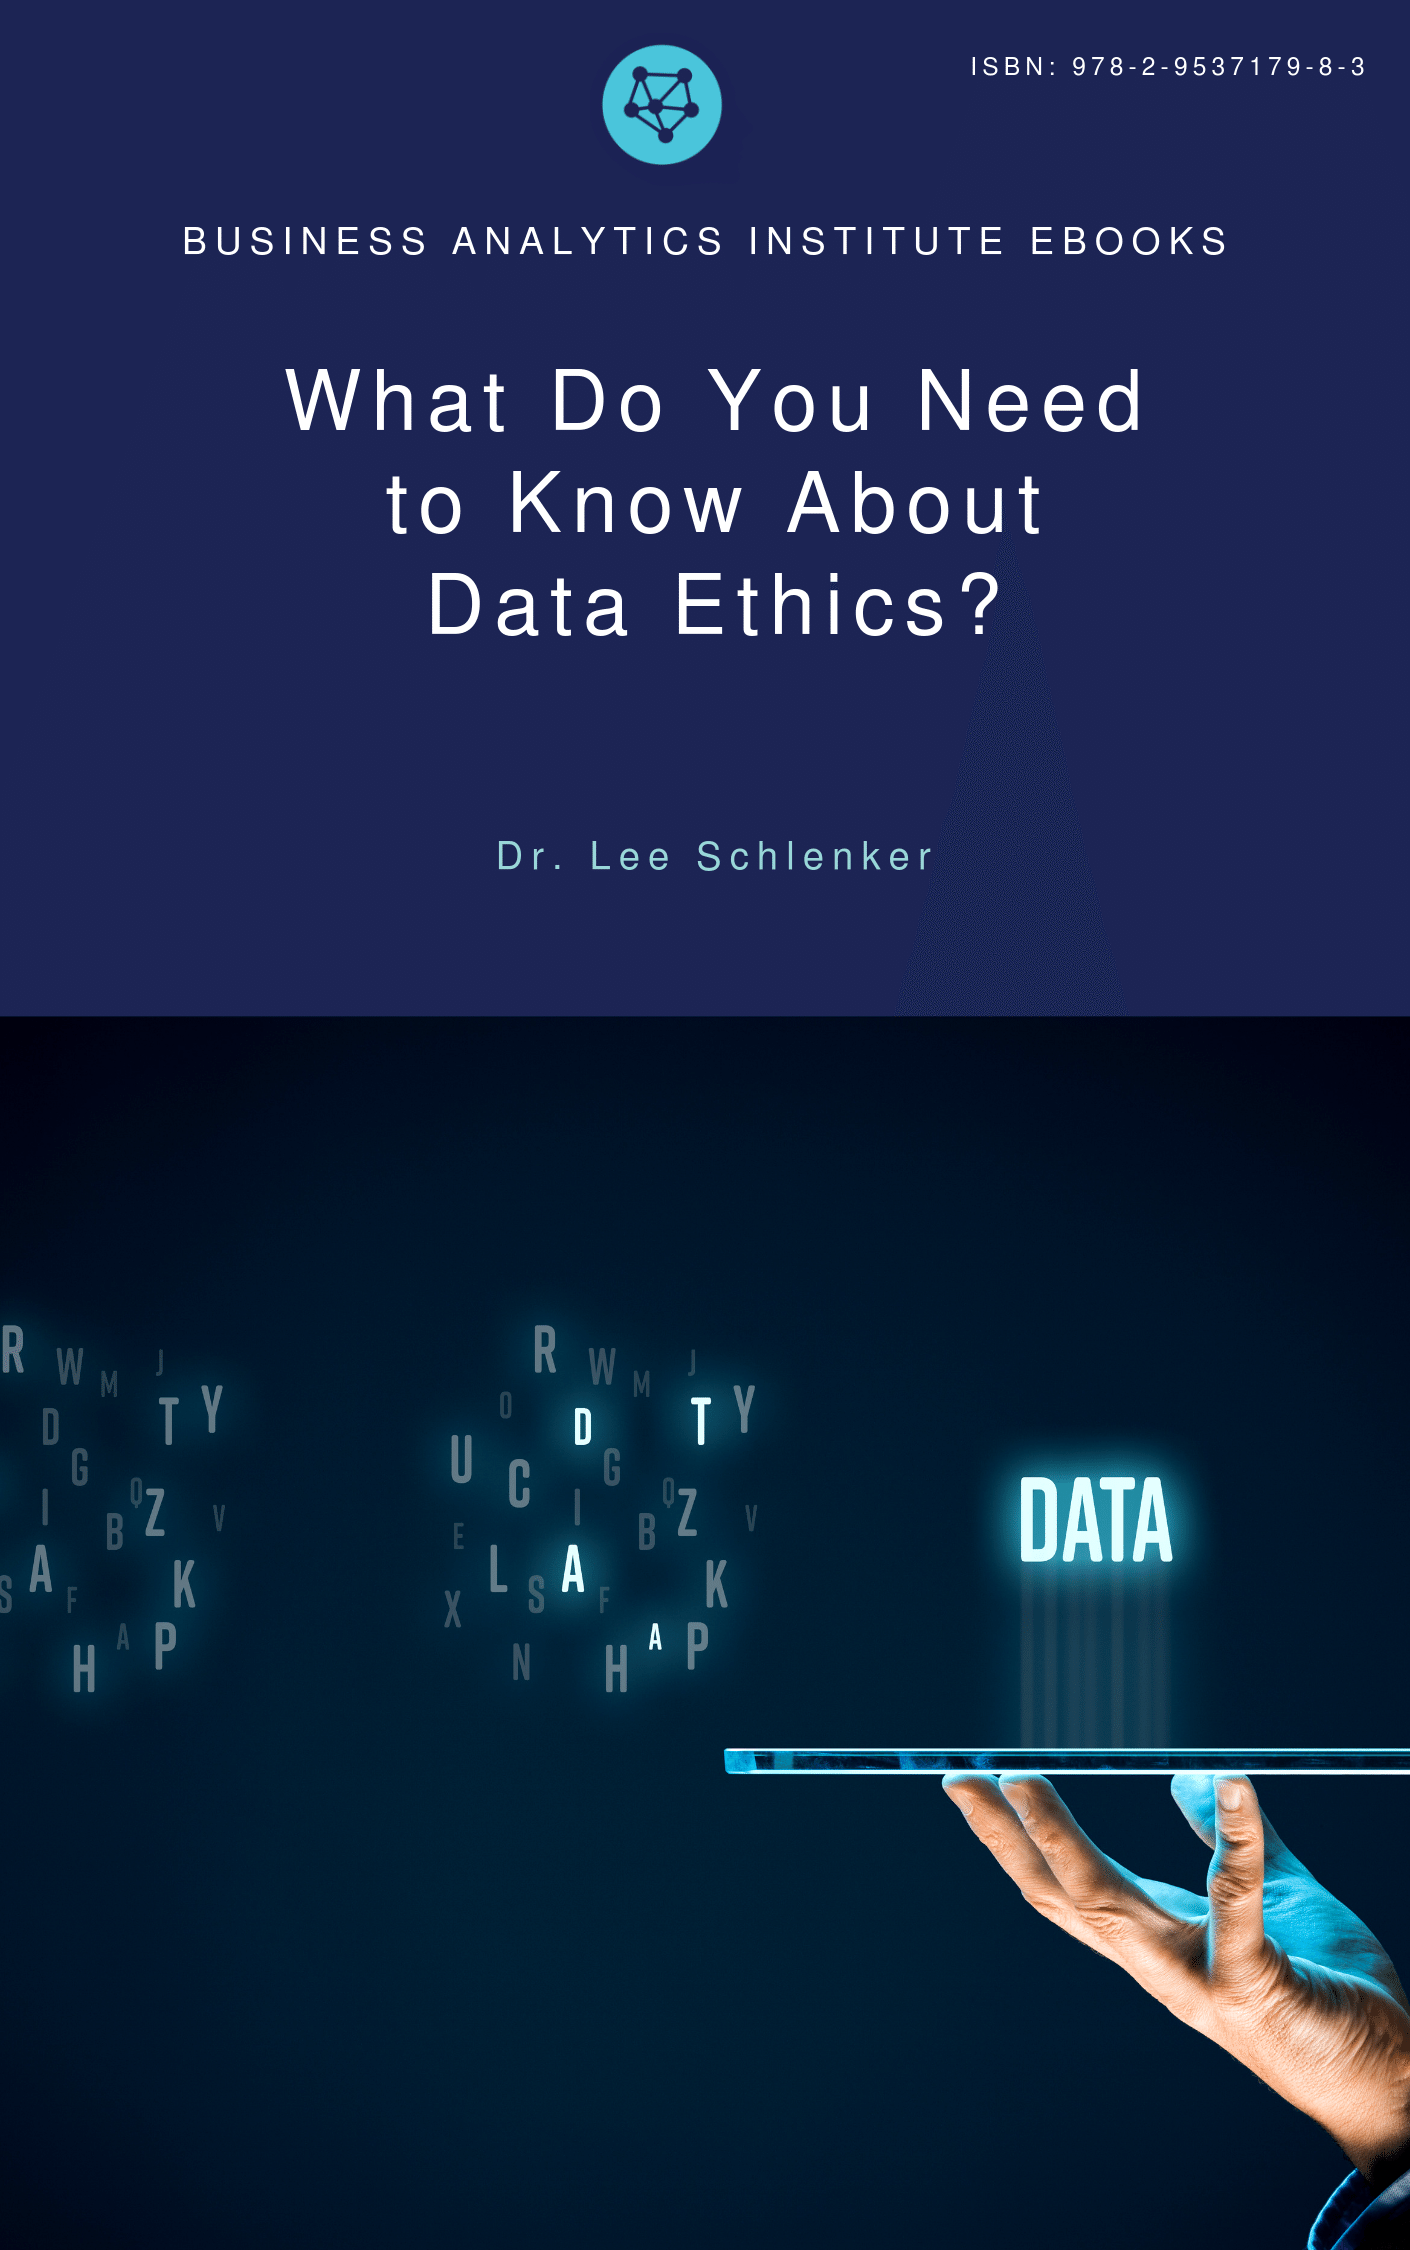 "Free e-book: Data Ethics - The increasing digitalization of human activity shapes the very definitions of how we evaluate ourselves, our jobs, and our careers.Data ethics involves the study and adoption of data practices and applications that respect fundamental individual rights and societal values. How important is data ethics, what issues need to be explored, which themes should be developed, and how will the subject impact your business? Data Ethics is less about developing codes of conduct than fostering ""practical wisdom"" to navigate ethical challenges posed by new generations of information technology."